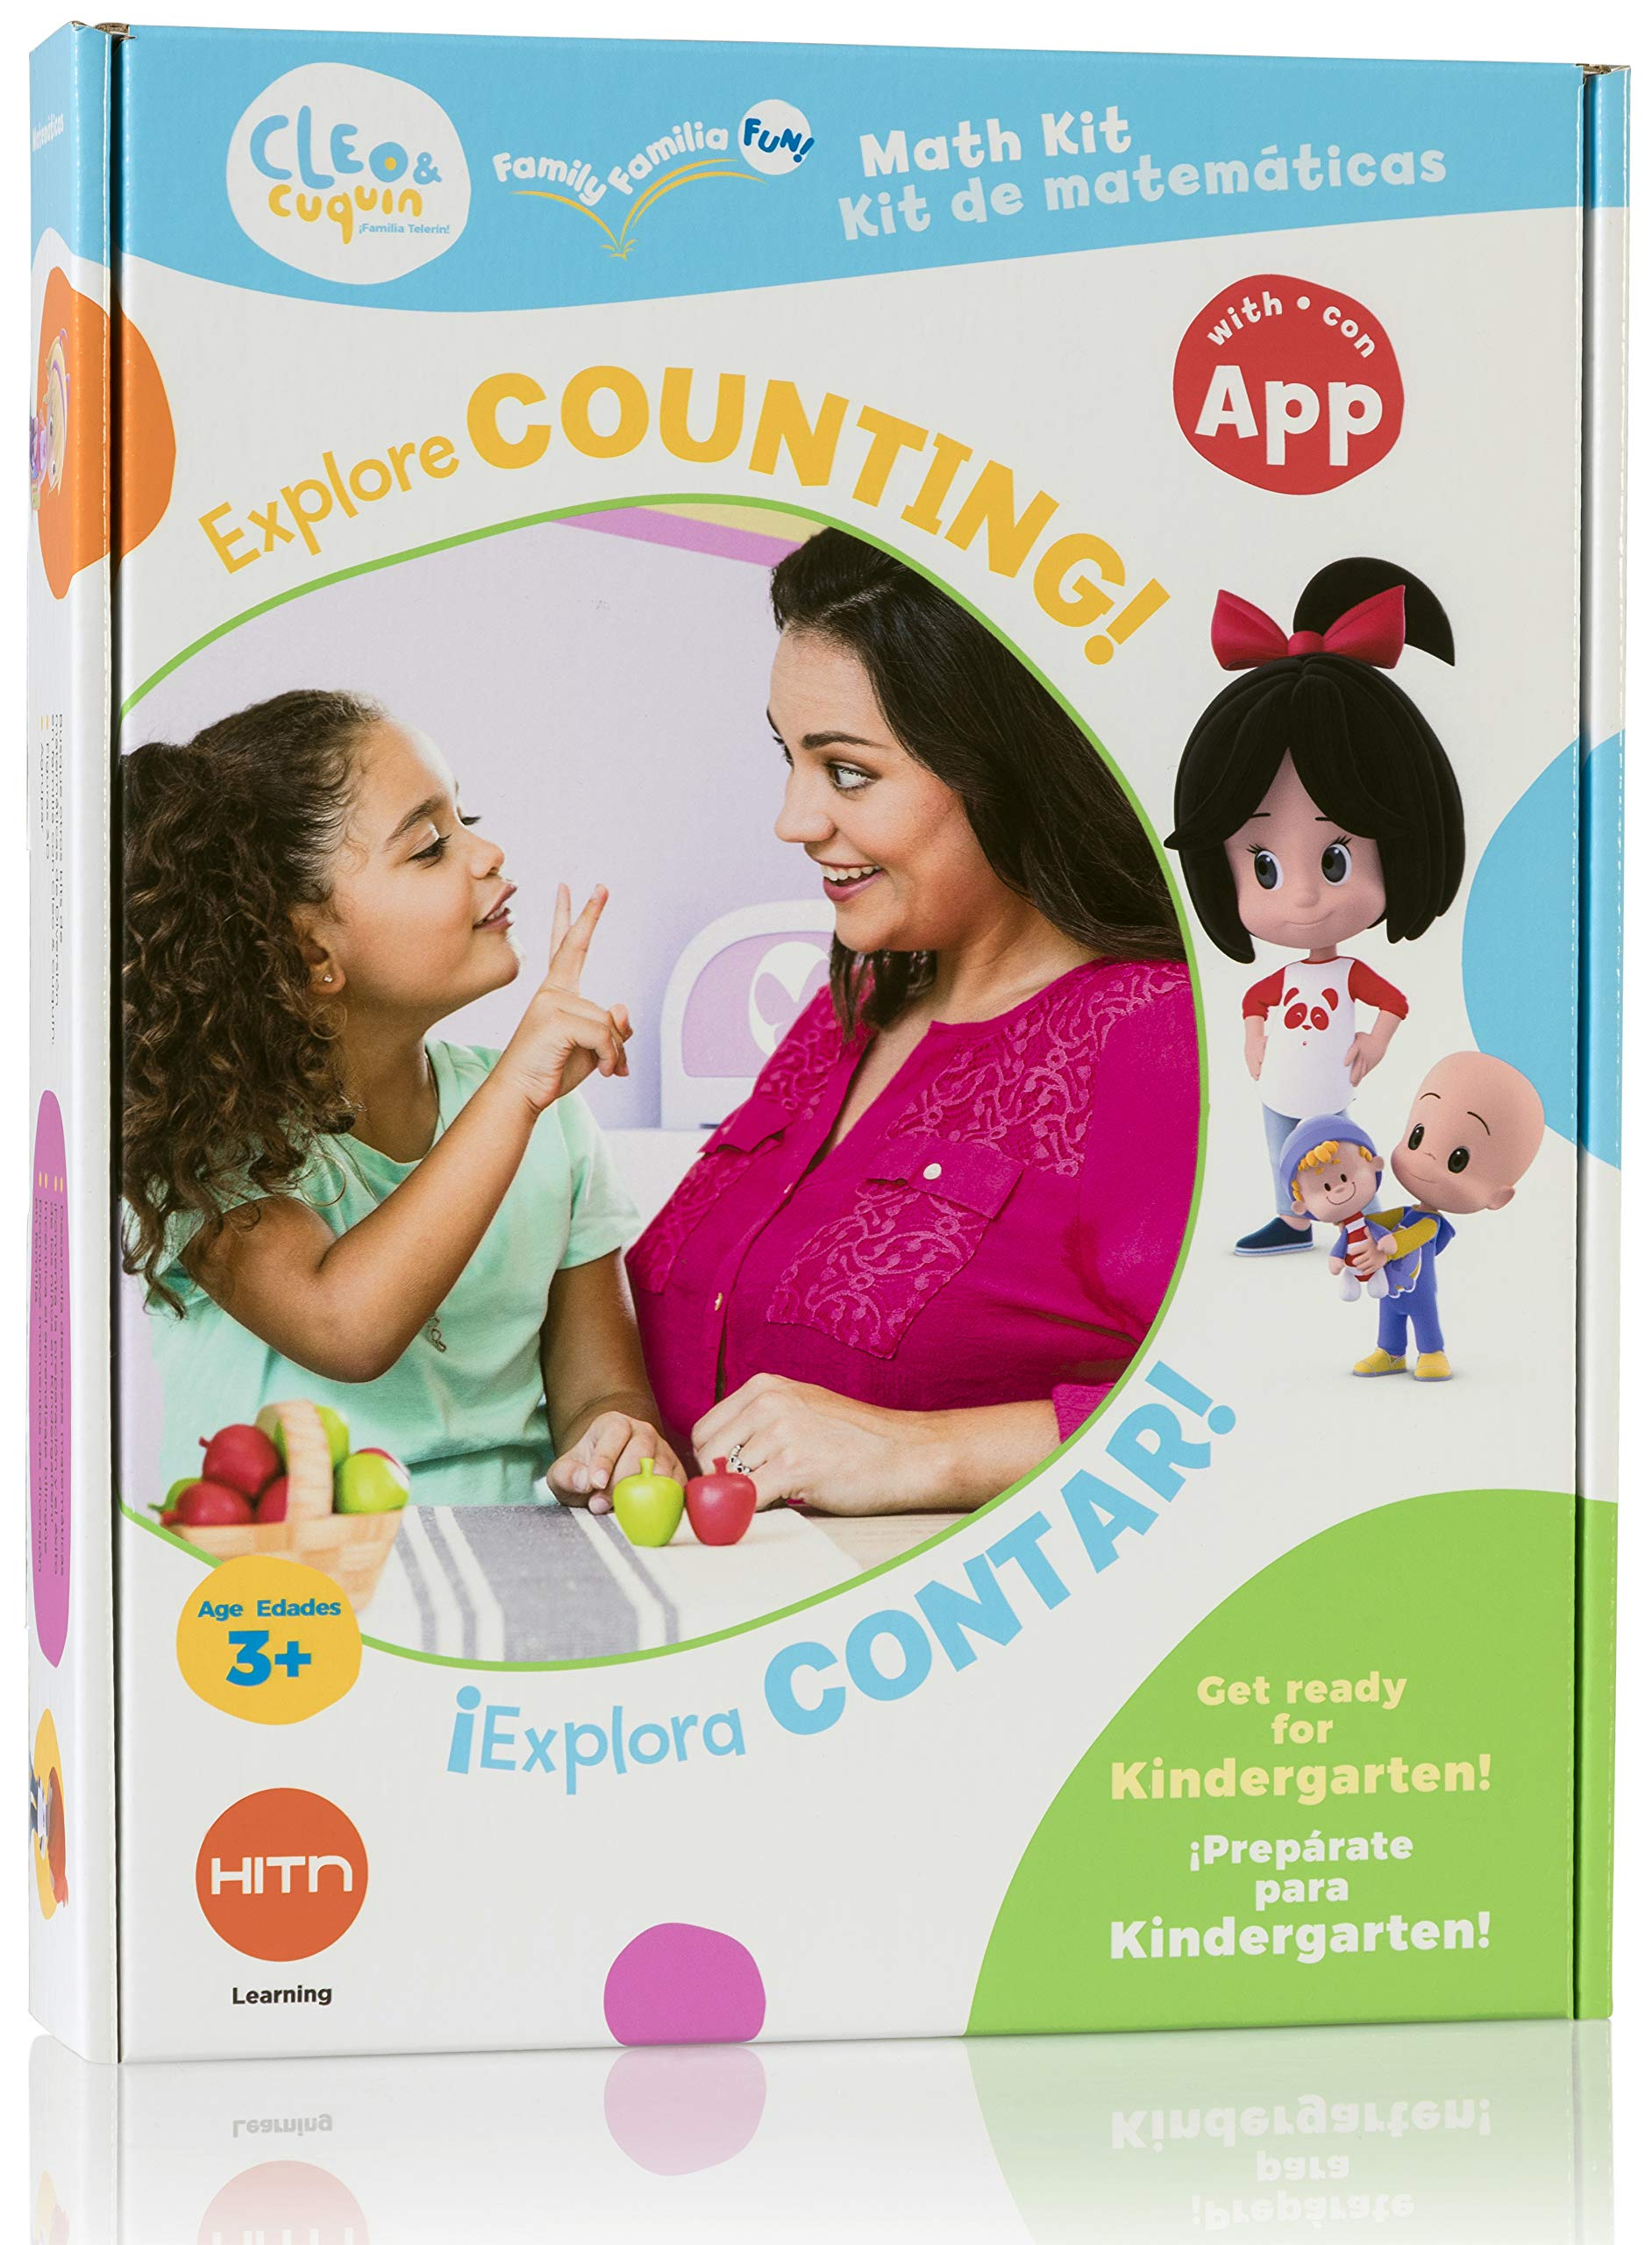 CLEO & cuquin Family Fun! Counting Math Kit and App: Spanish/English Education, Ages 3-5, Kindergarten Readiness by CLEO & cuquin